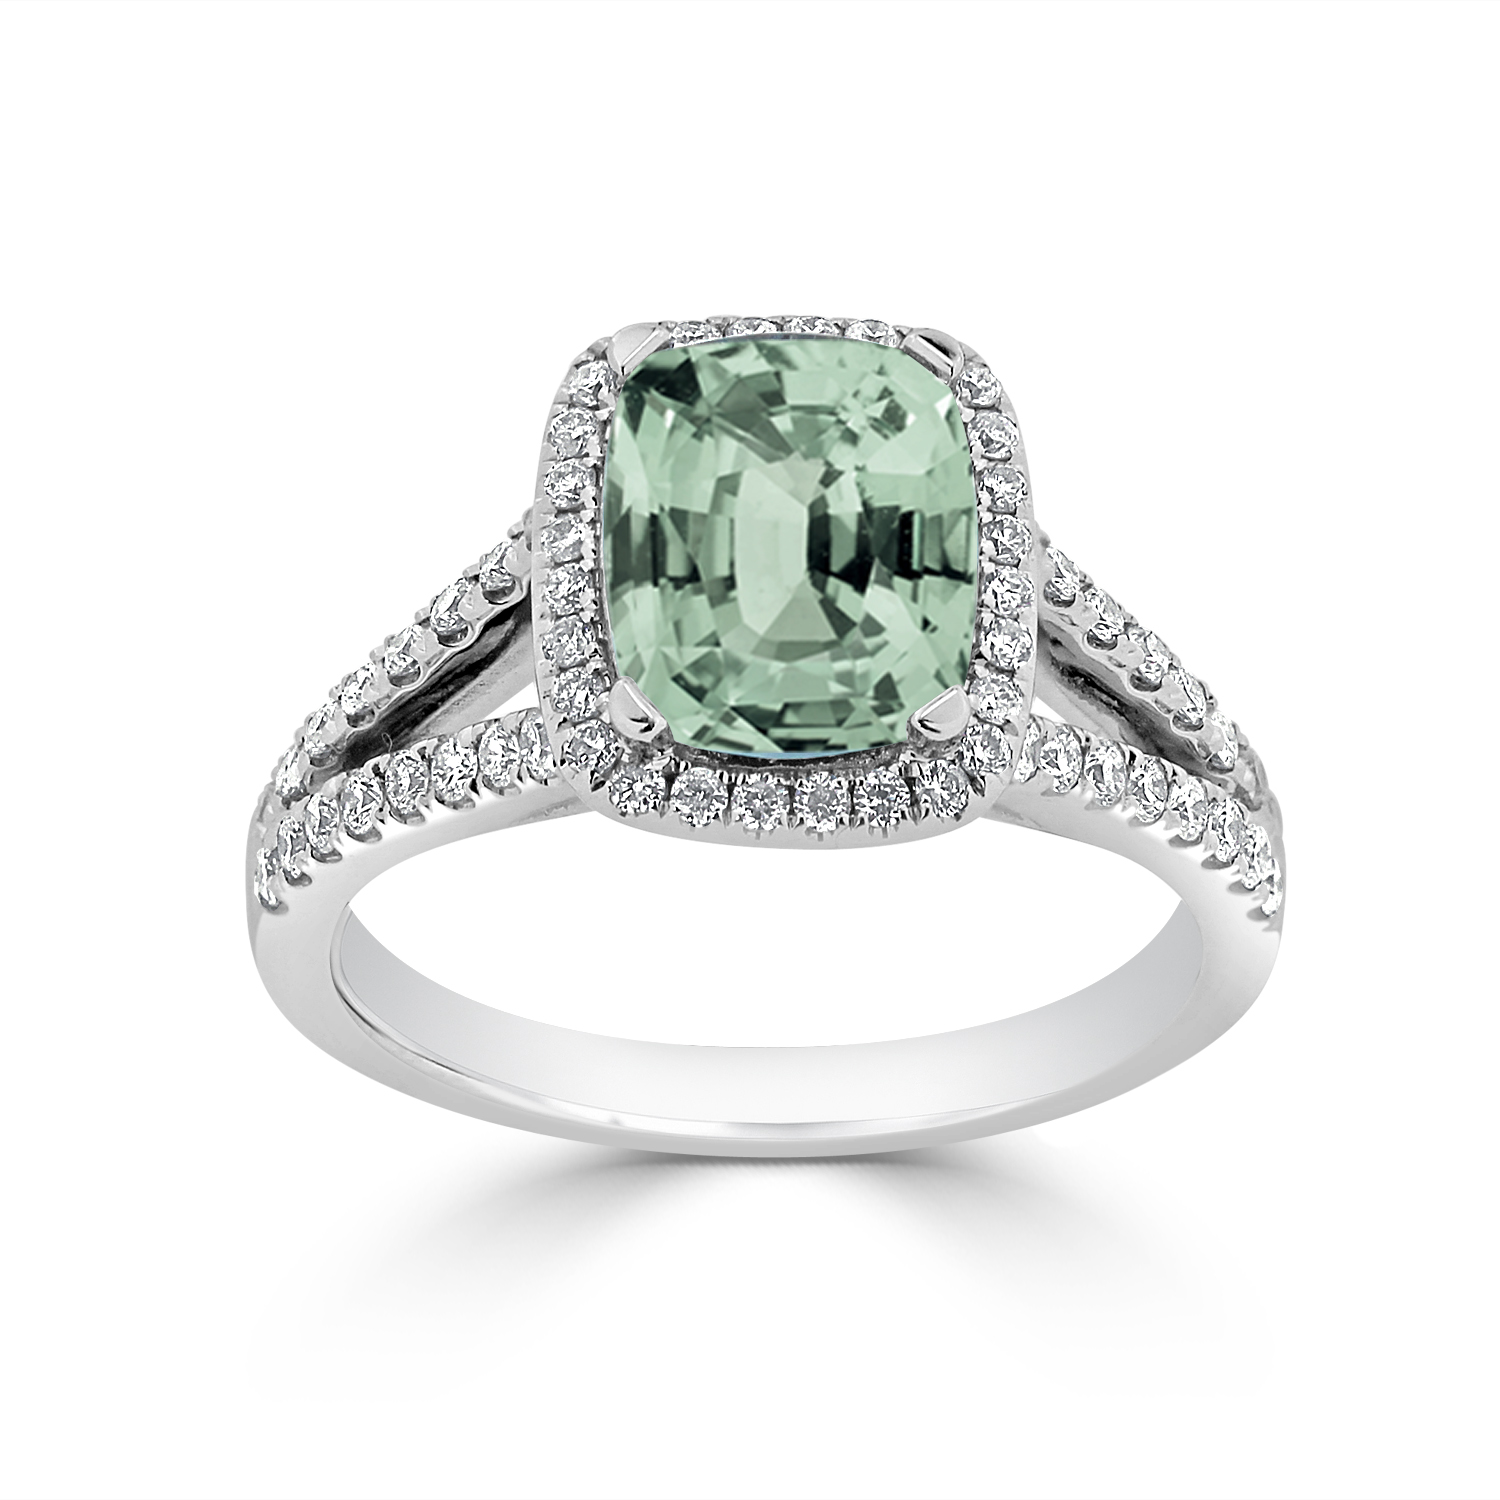 Halo Green Amethyst Diamond Ring in 14K White Gold with 1.10 carat Cushion Green Amethyst